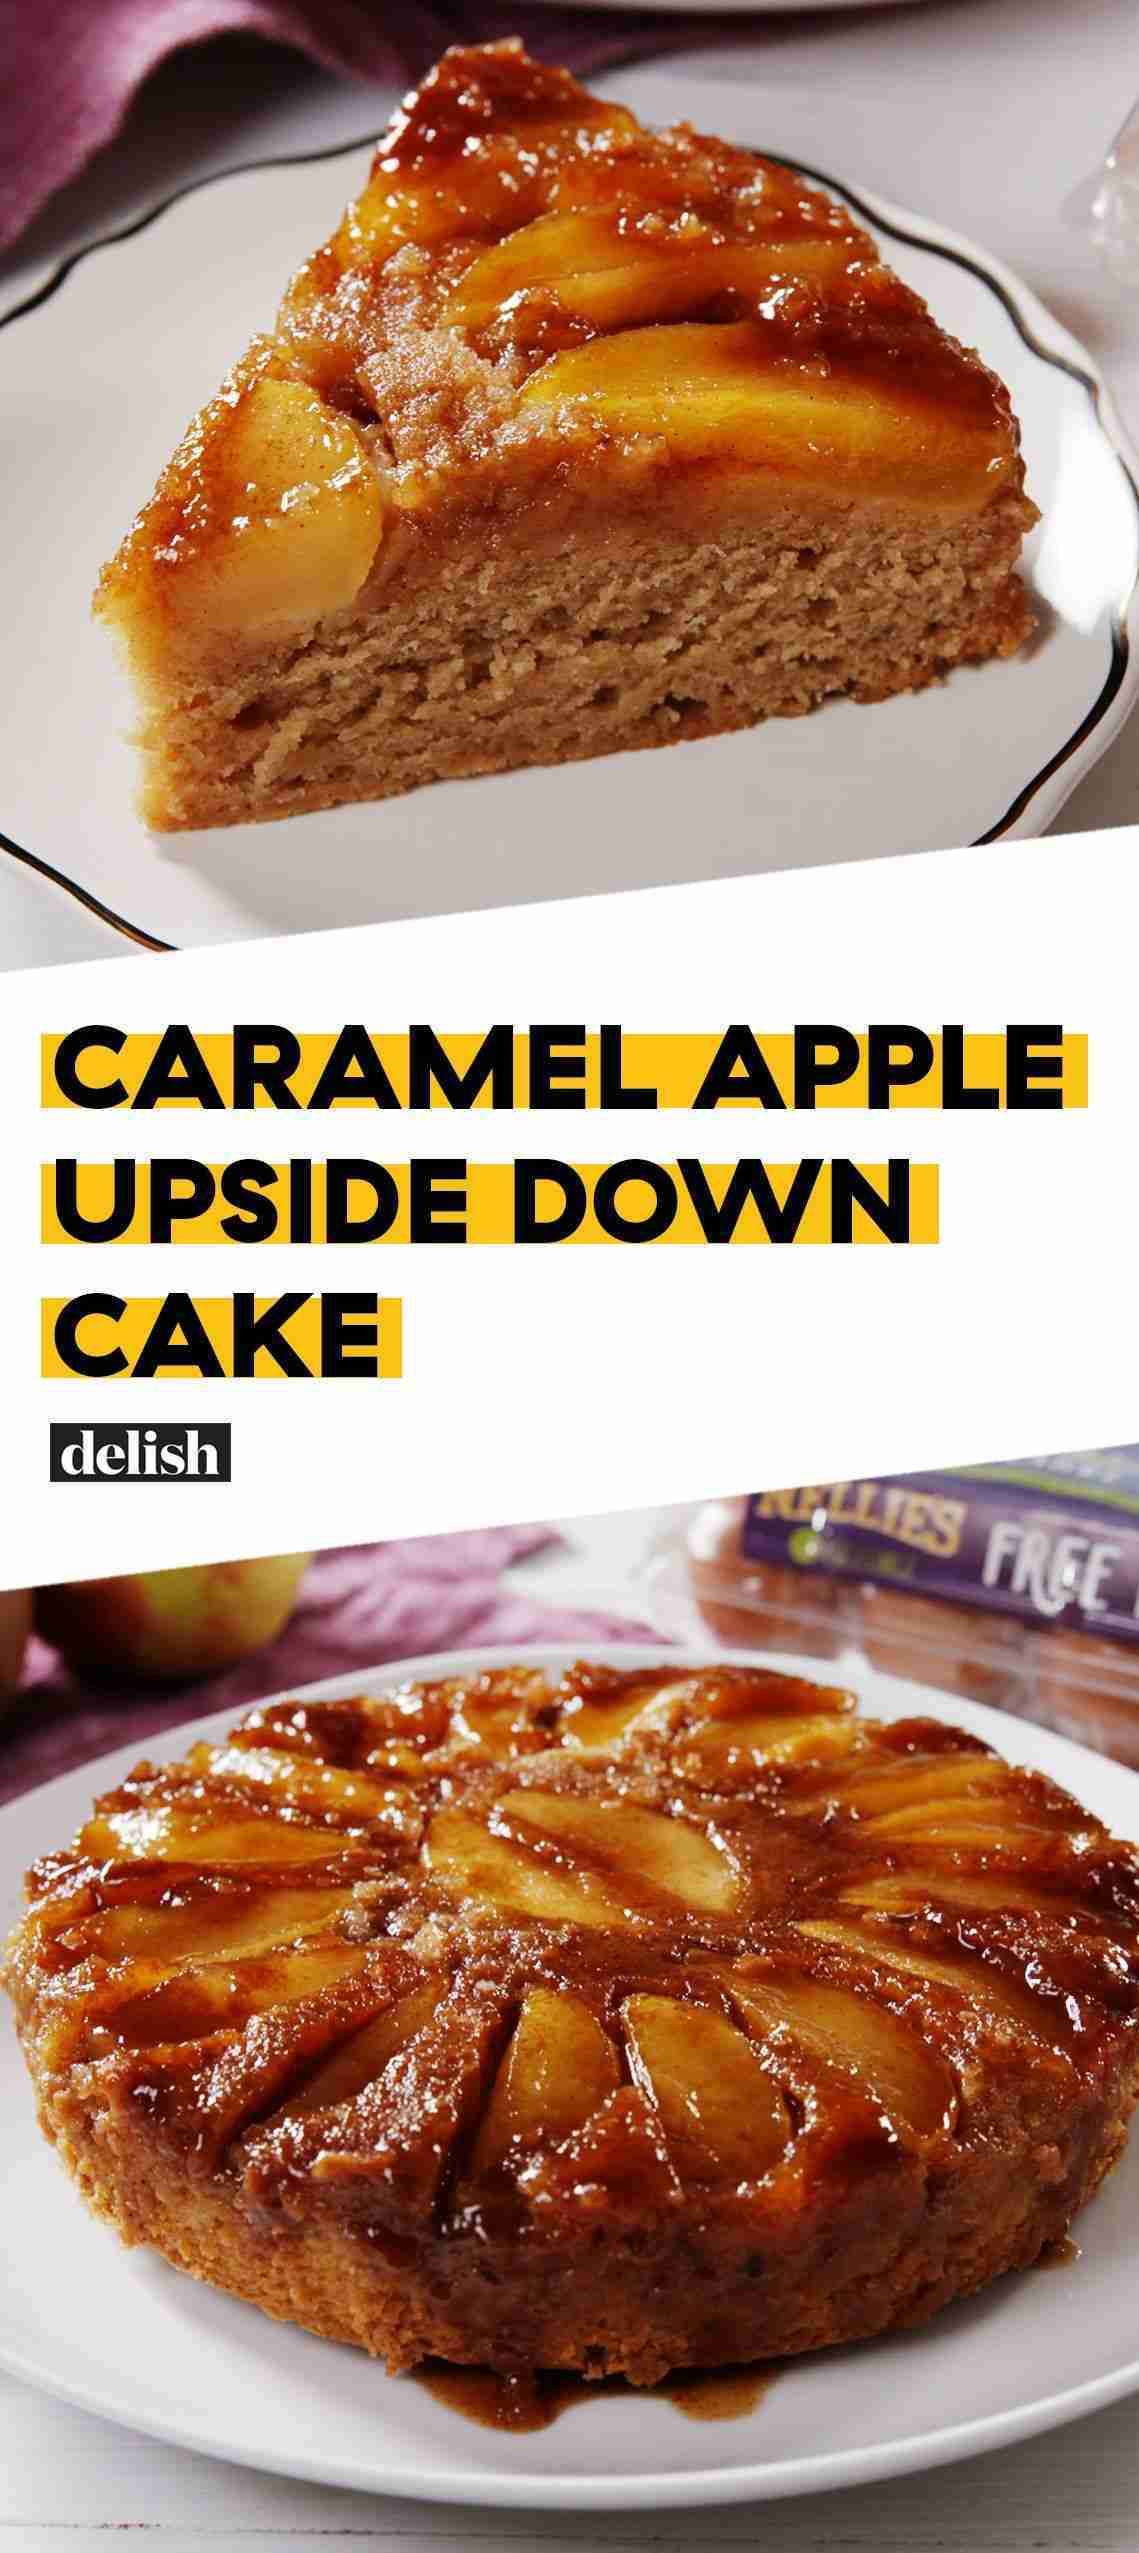 Caramel Apple Upside Down Cake Is The PERFECT Fall Dessert